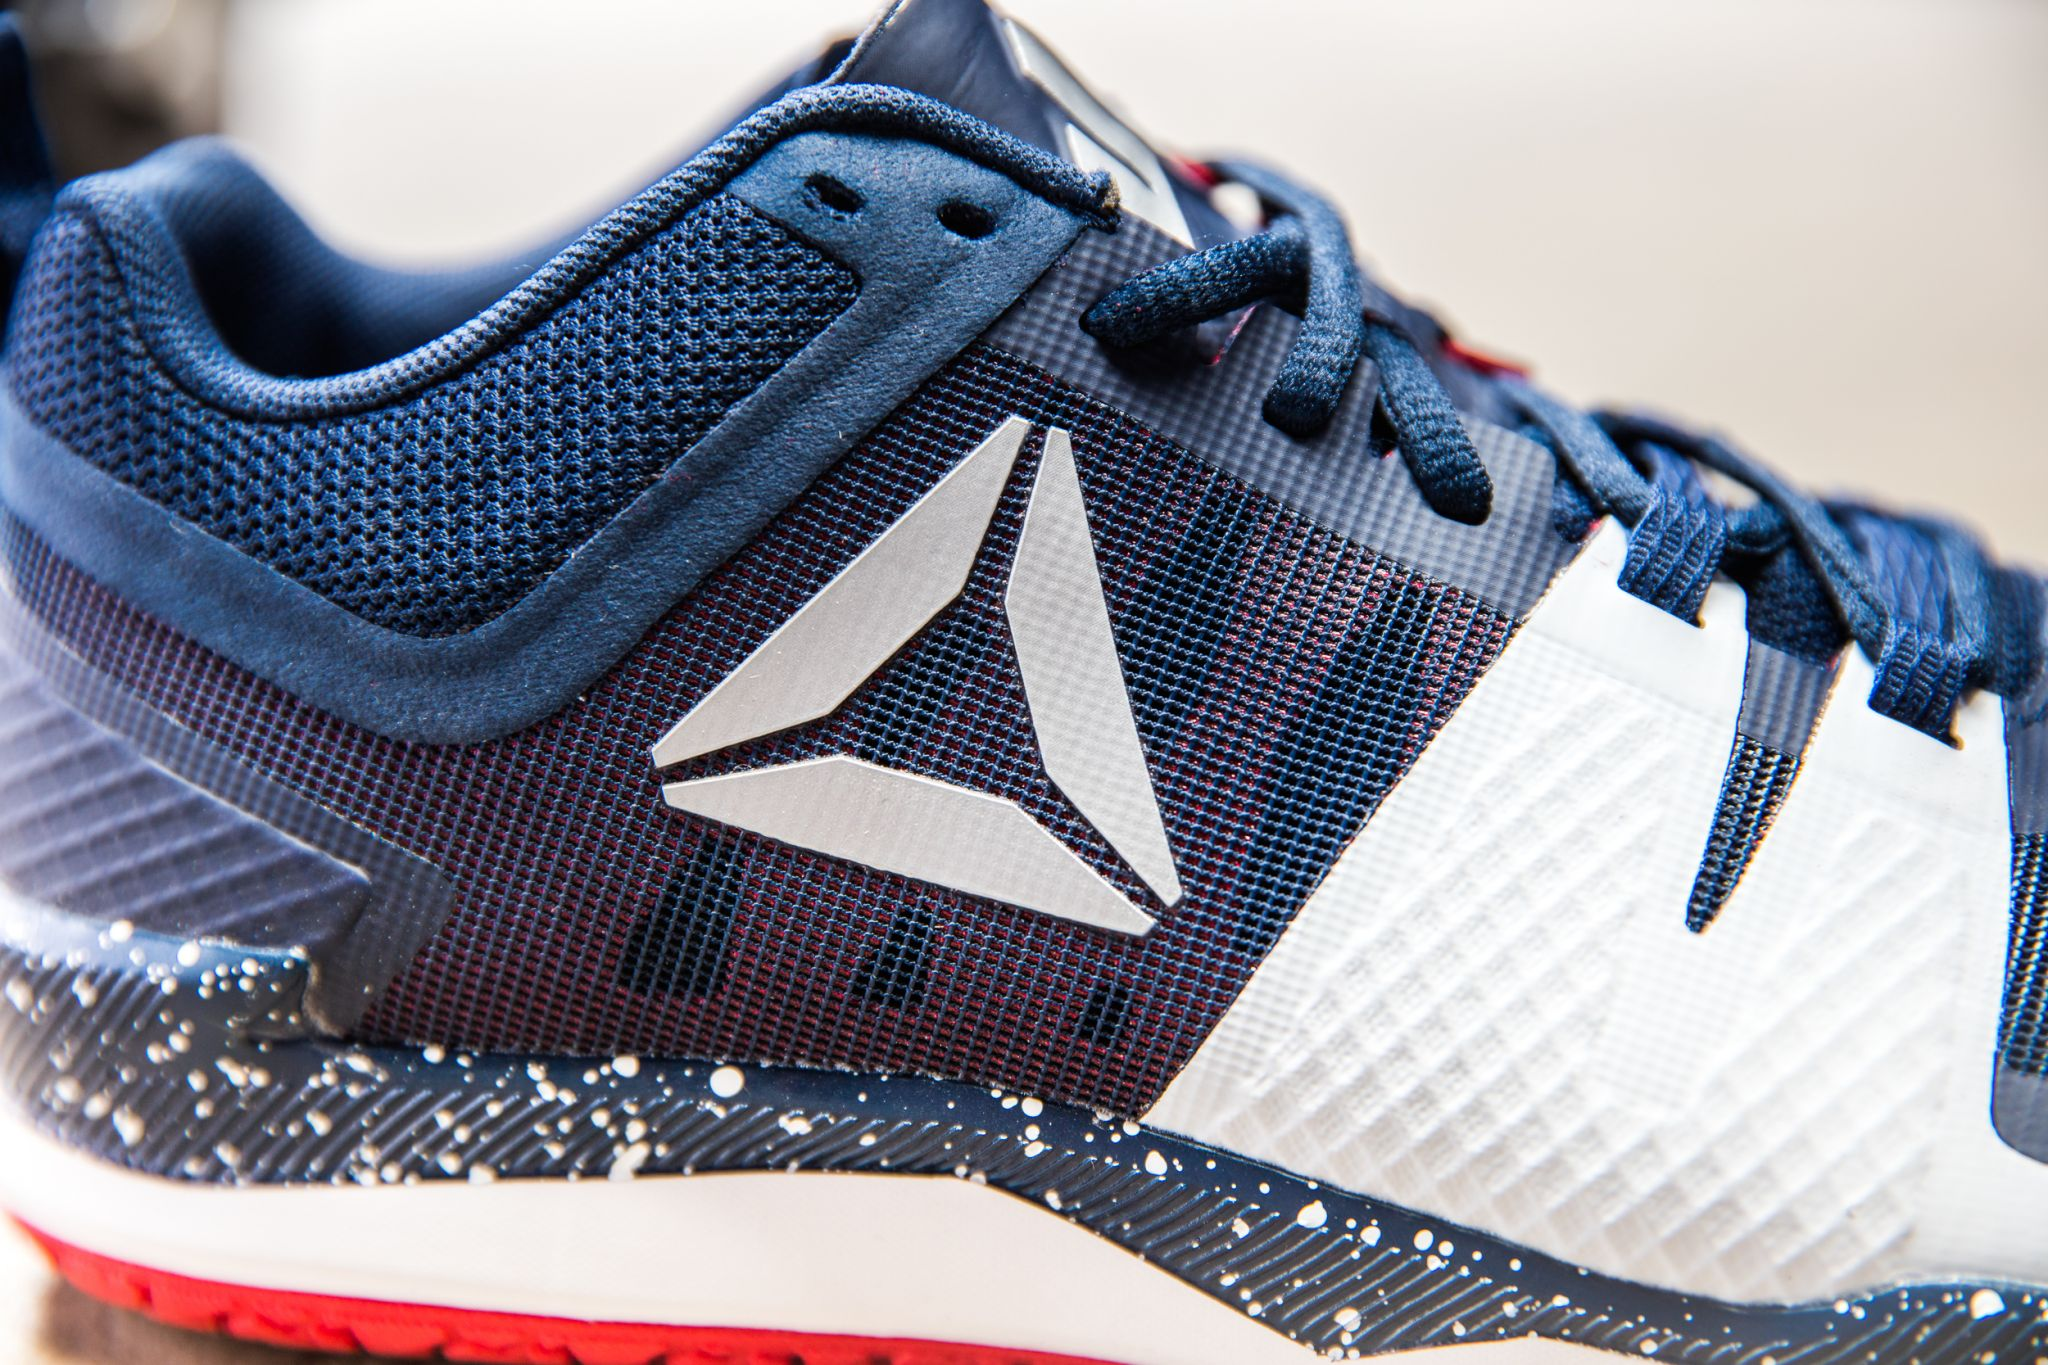 New release of Texans  J.J. Watt s shoes hits stores Friday - Houston  Chronicle 2cd0239d1